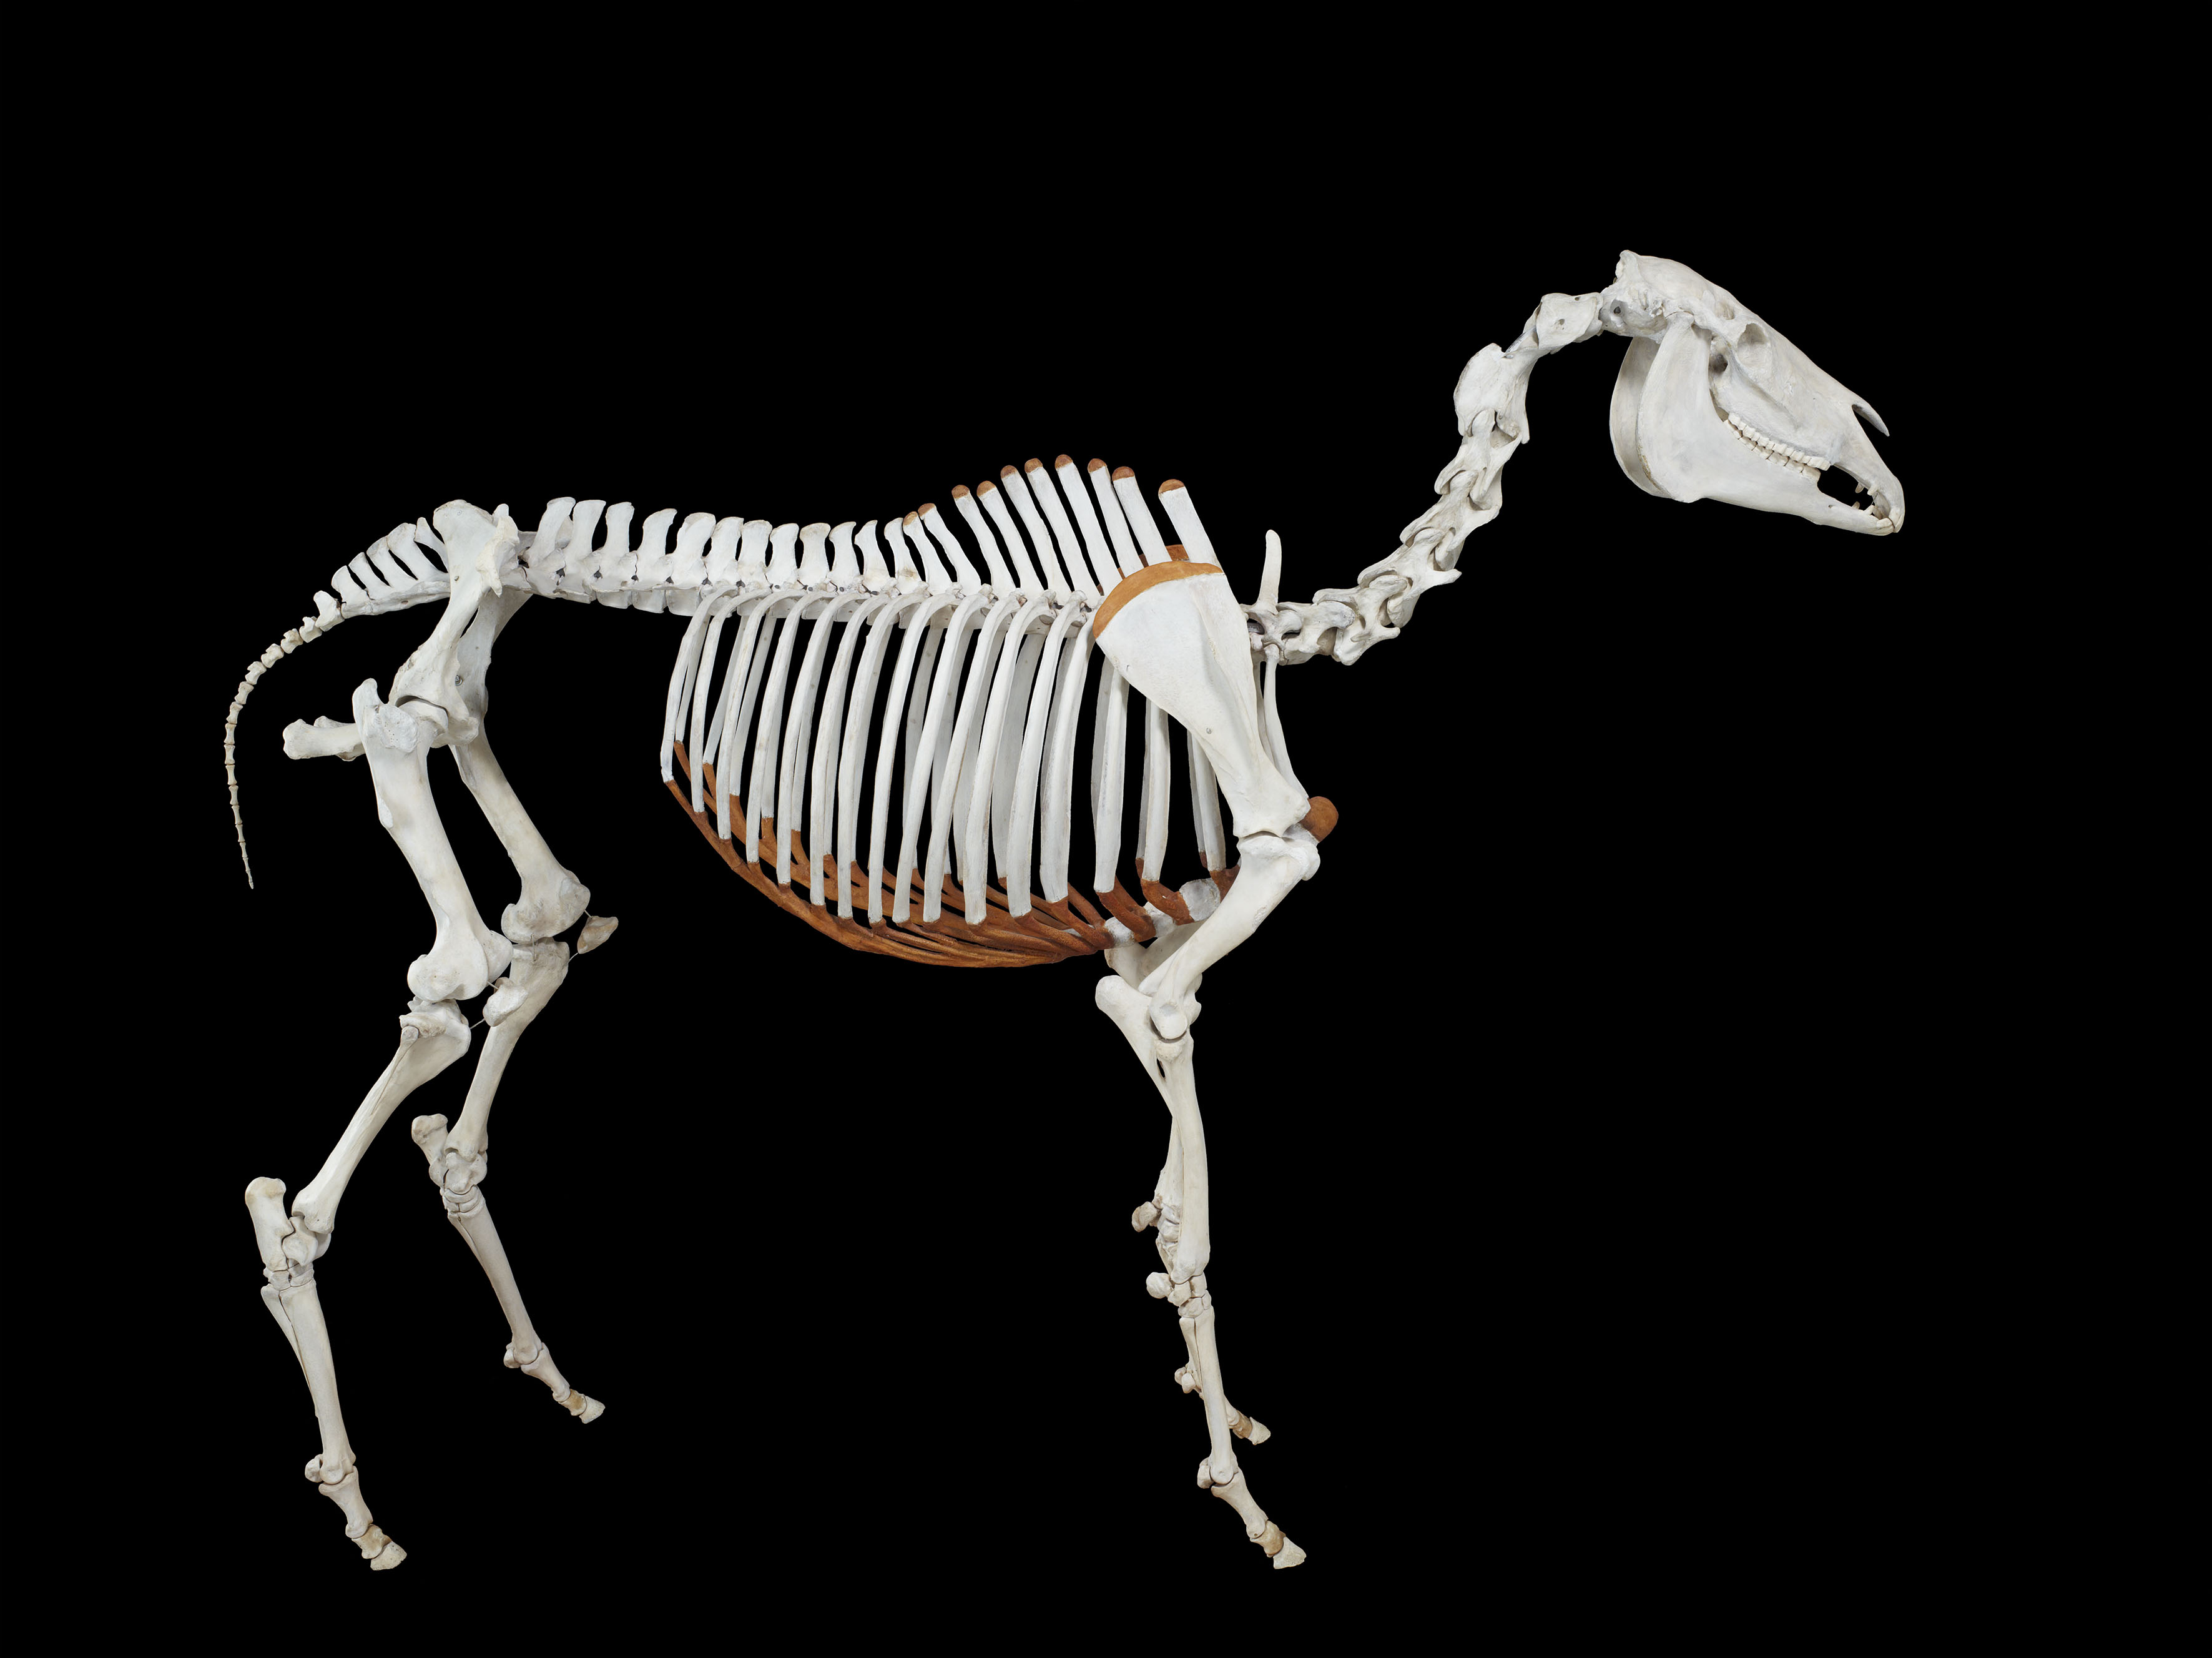 Phar Lap's skeleton